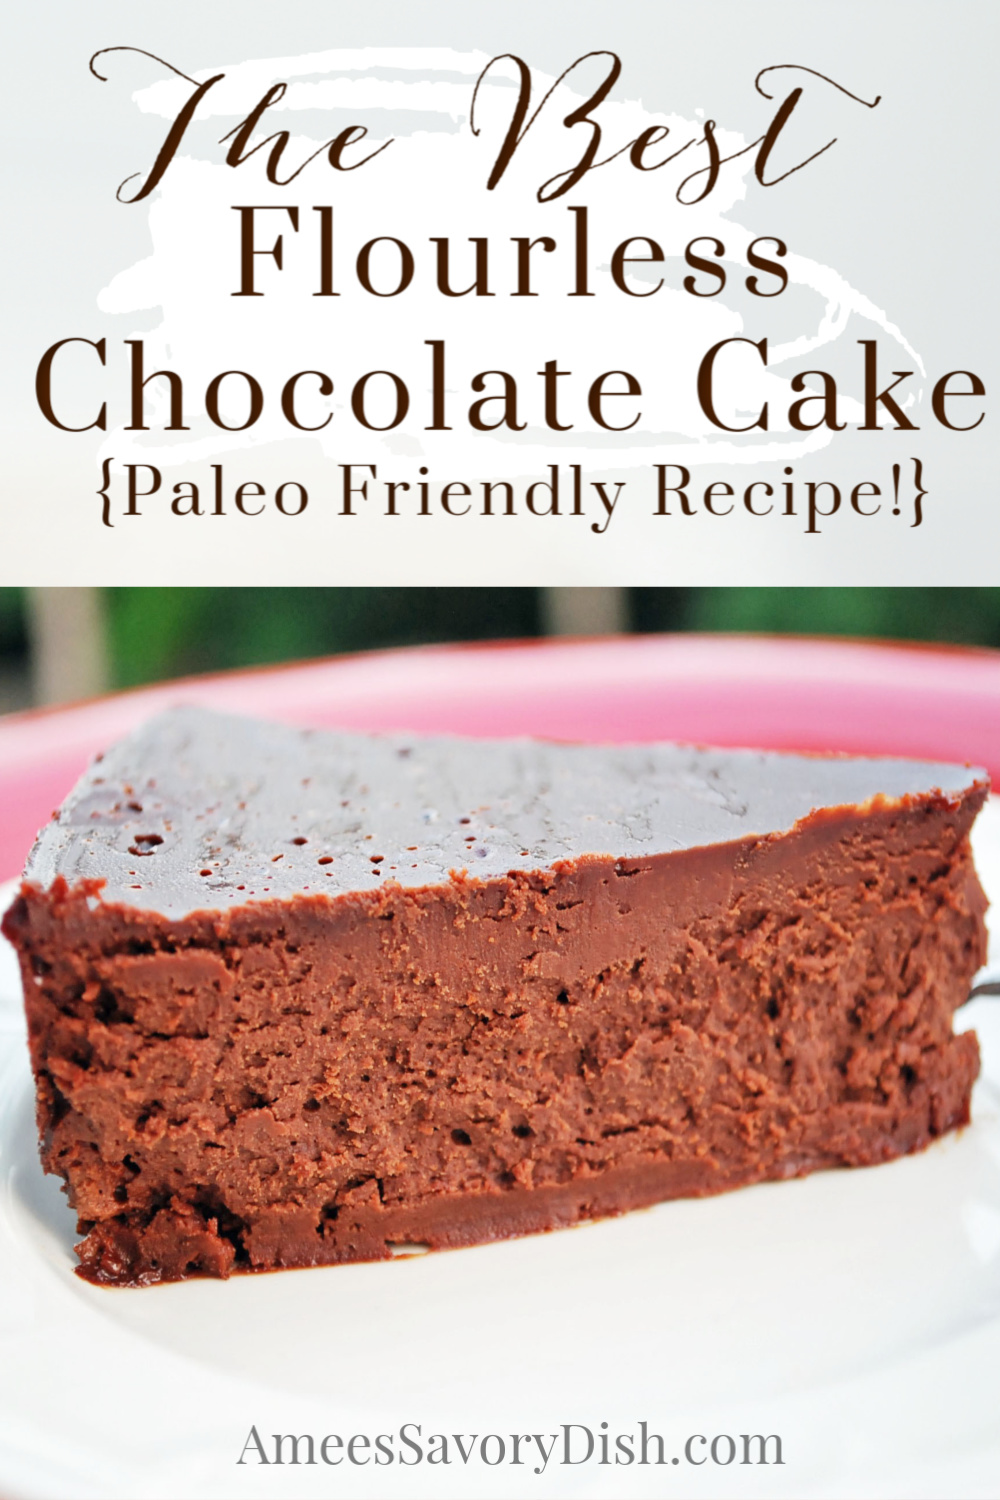 This Paleo Flourless Chocolate Cake is a Paleo diet-friendly recipe made with rich, velvety dark chocolate guaranteed to satisfy your sweet tooth! #paleodesserts #flourlesschocolatecake #chocolaterecipe #paleocake via @Ameessavorydish